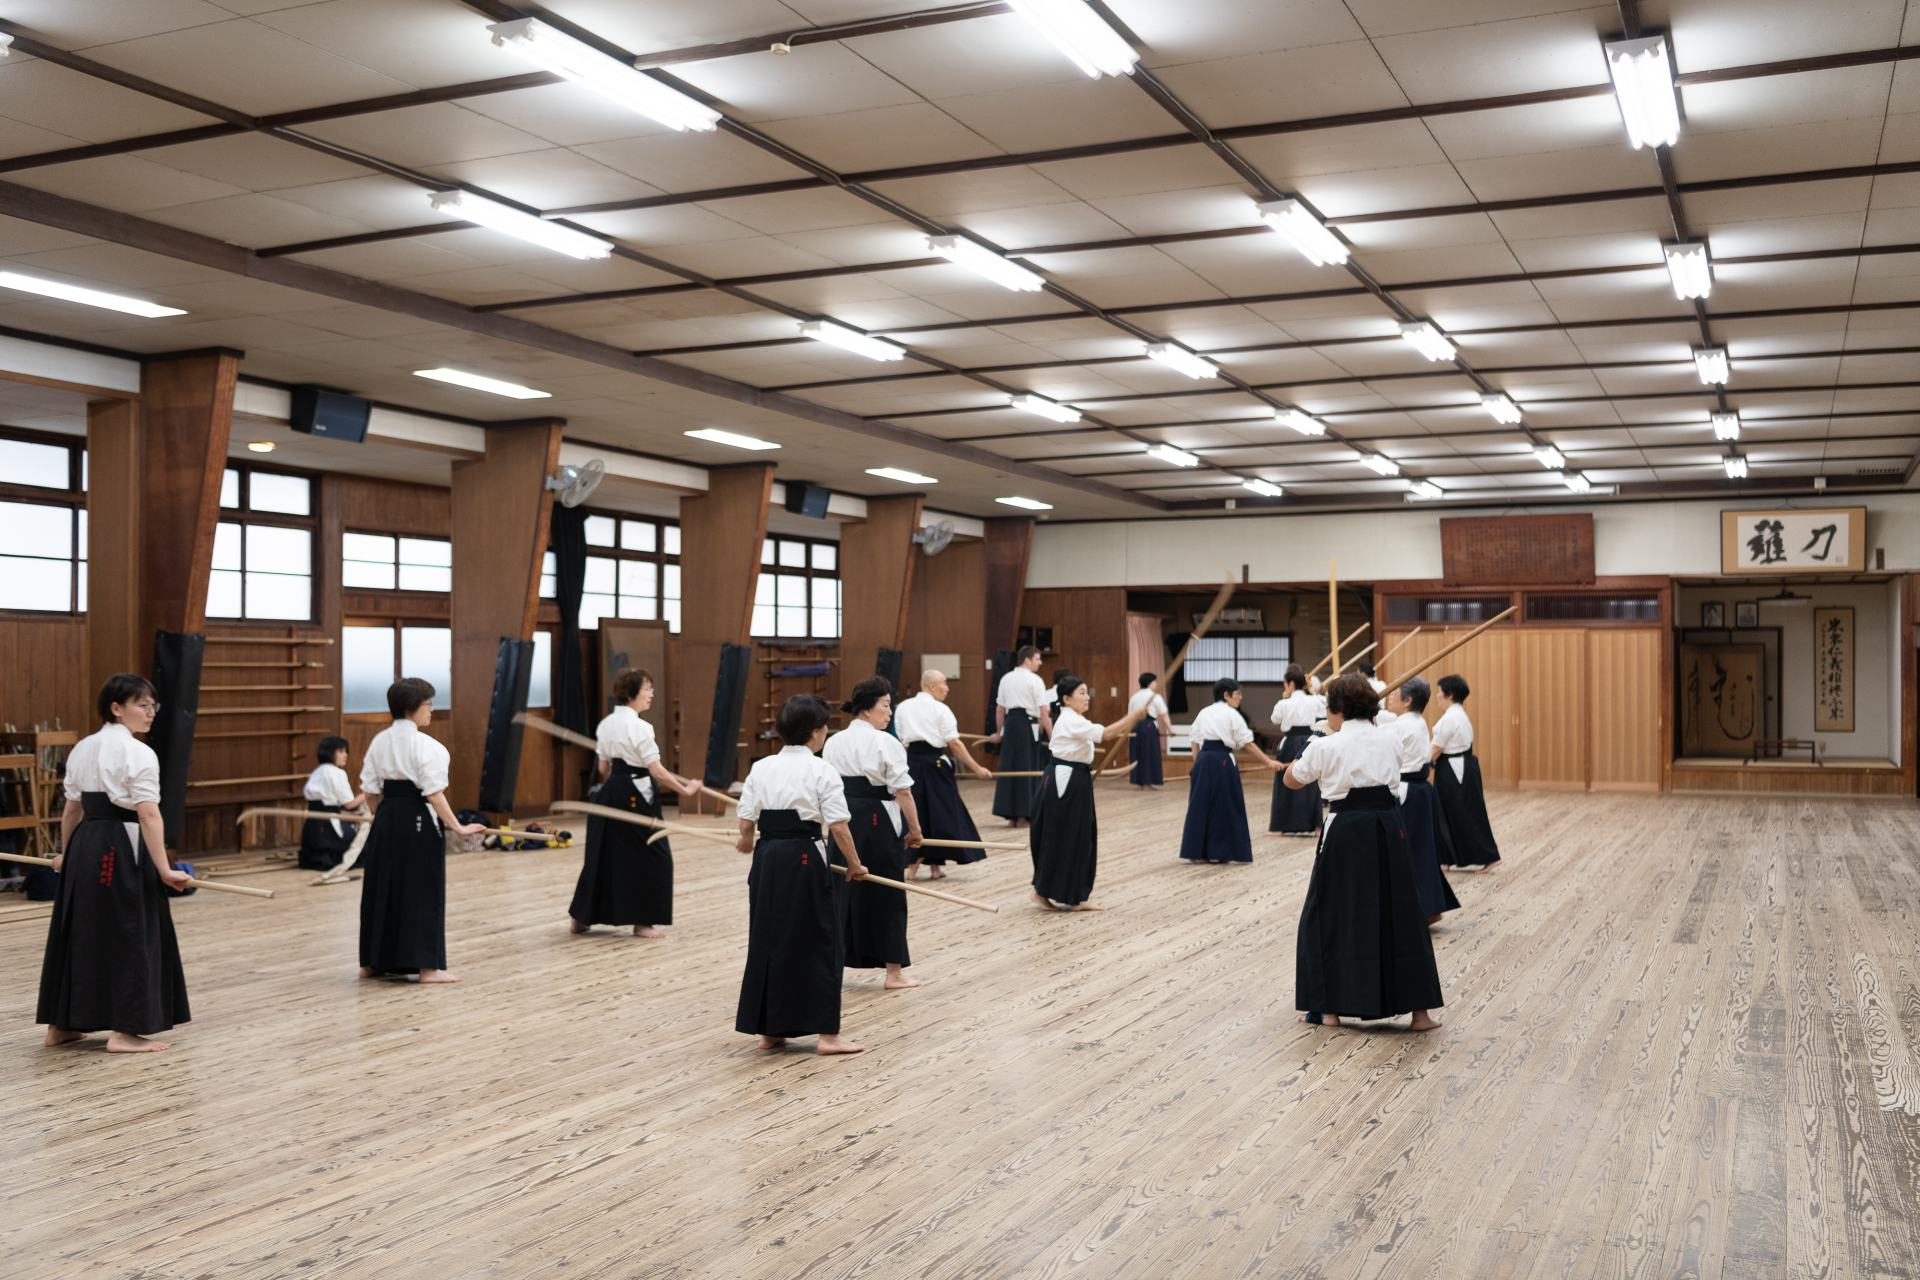 The dojo's interior has a historic appearance. The feel of your bare feet on Japanese cedar planks is pleasant.